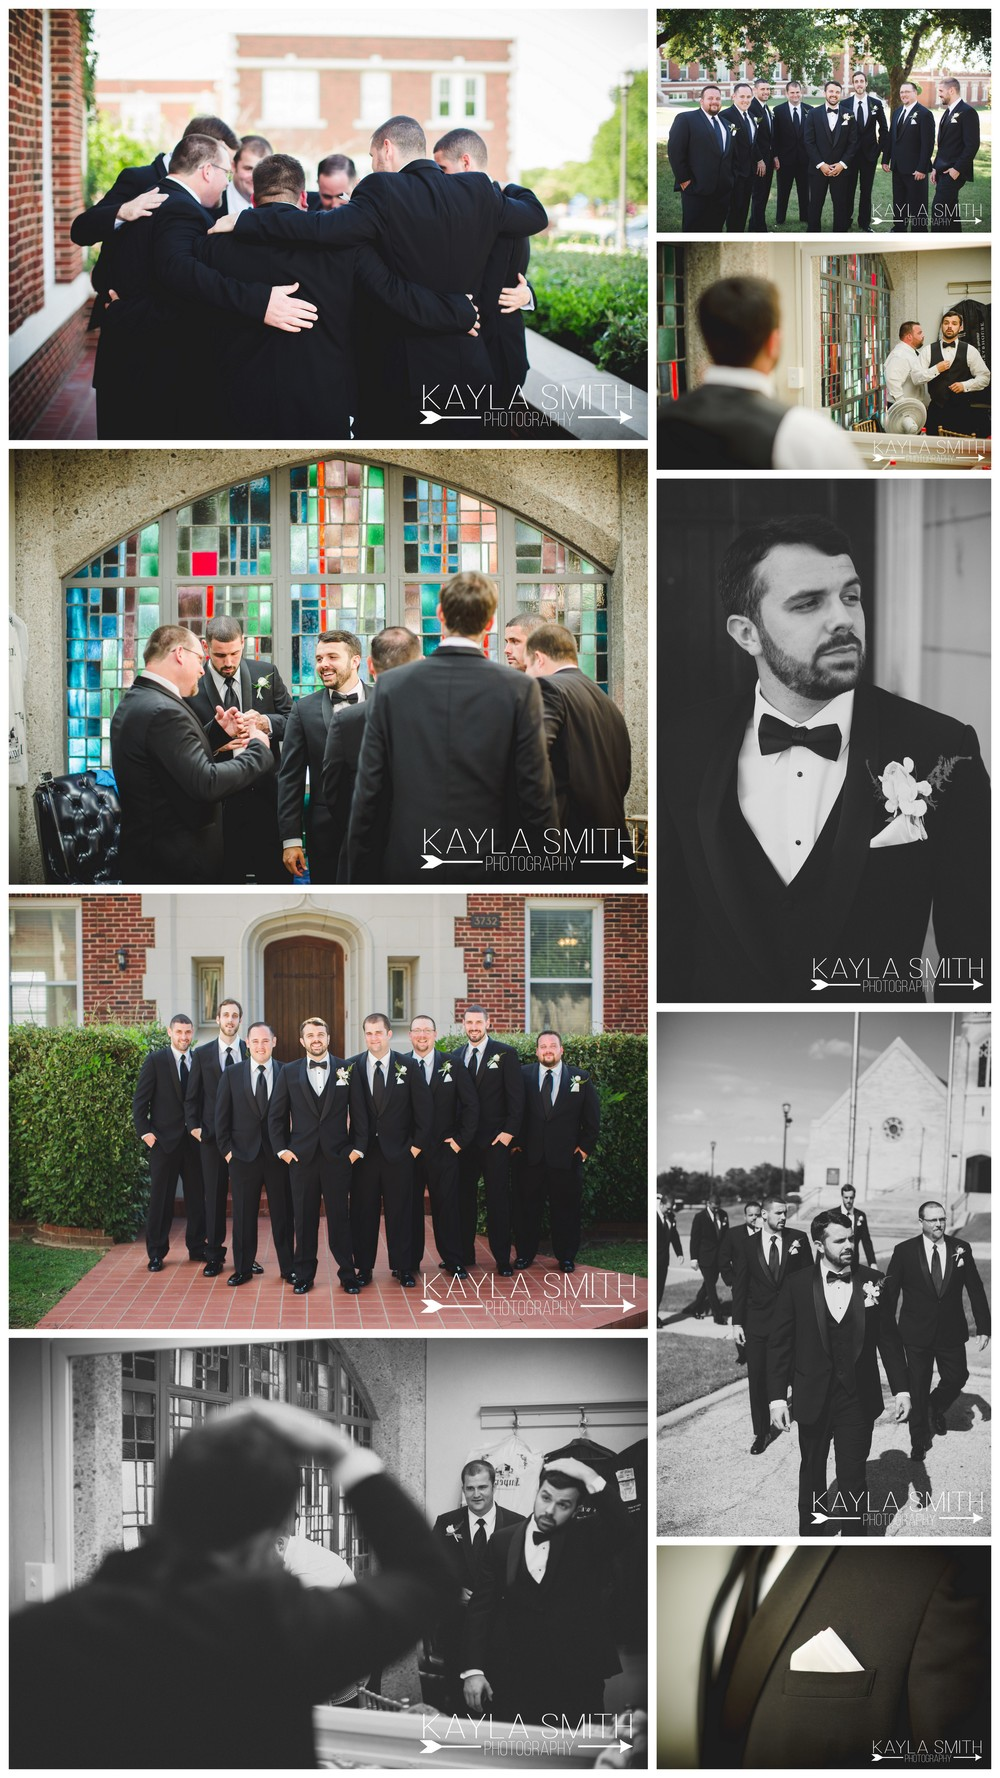 The guys decided they wanted to pray together before the ceremony.